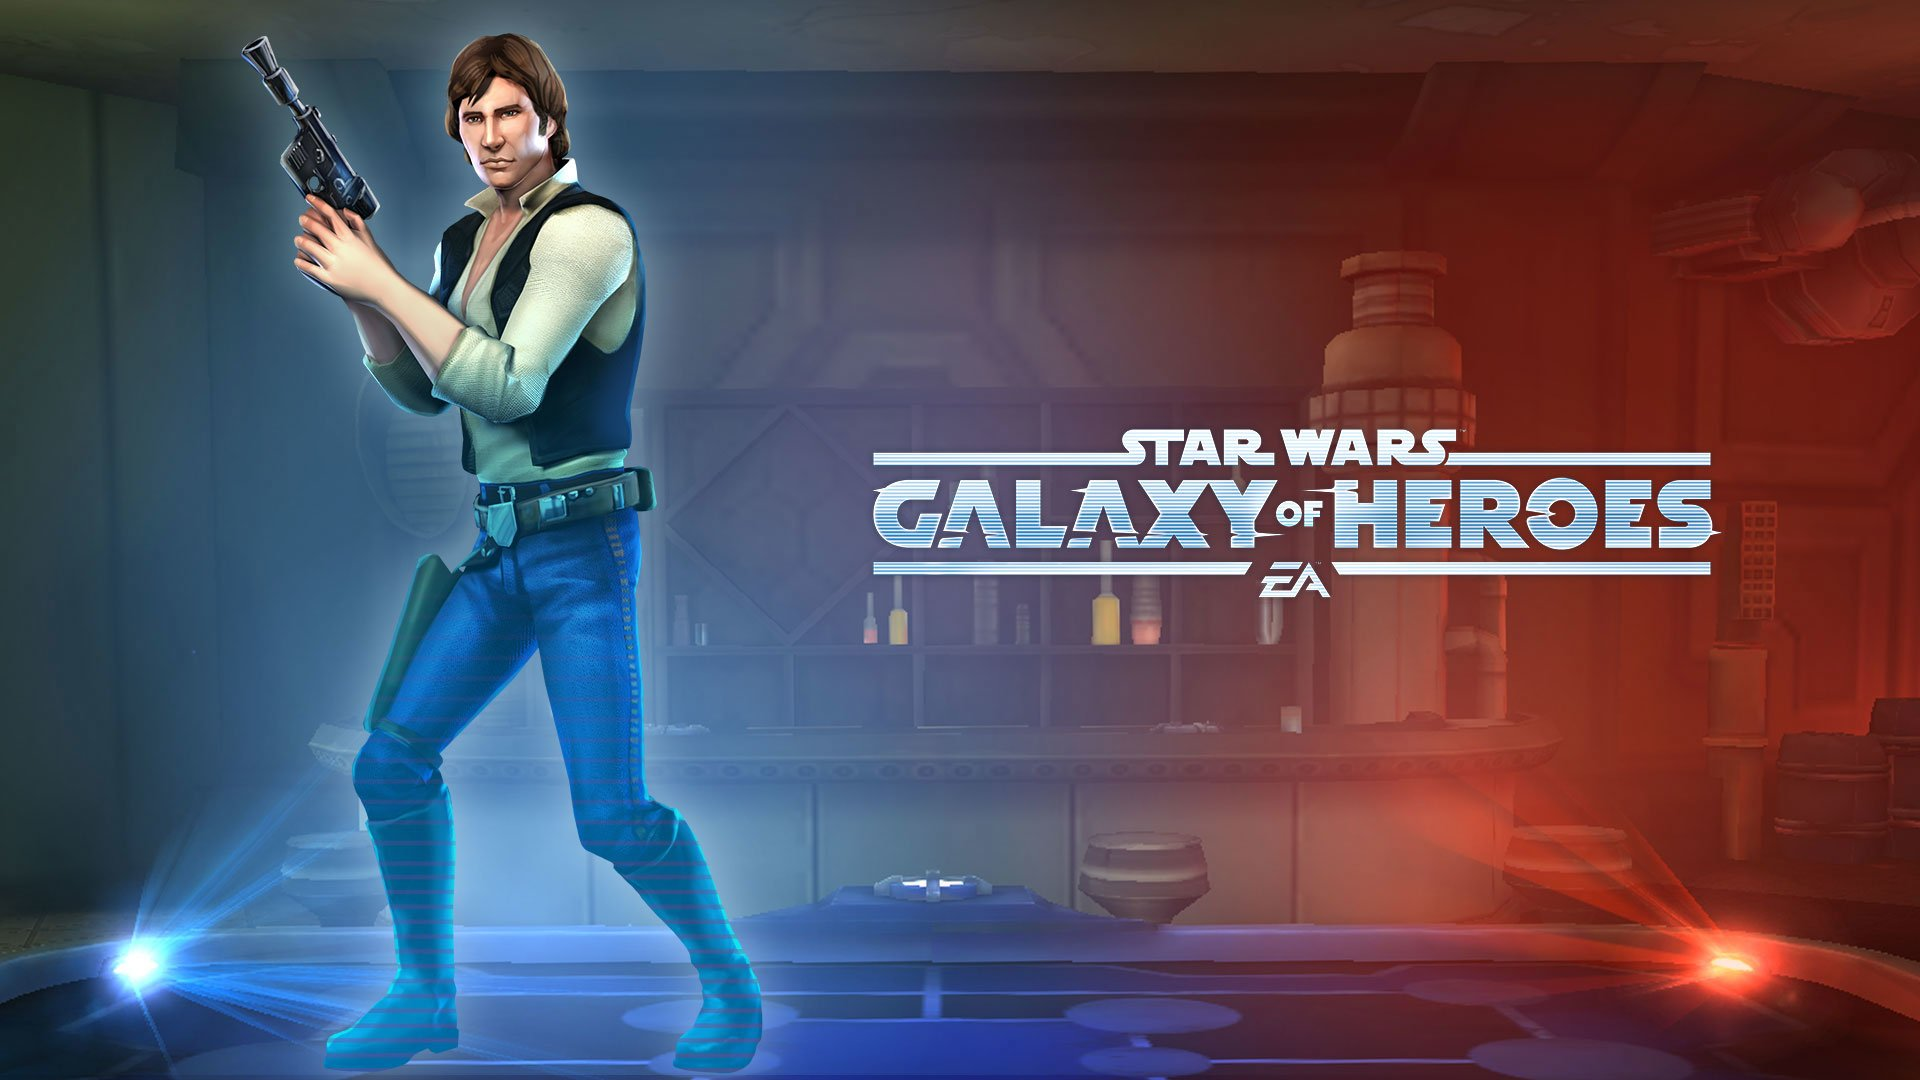 Star Wars Galaxy Of Heroes Hd Wallpaper Background Image 1920x1080 Id 901269 Wallpaper Abyss